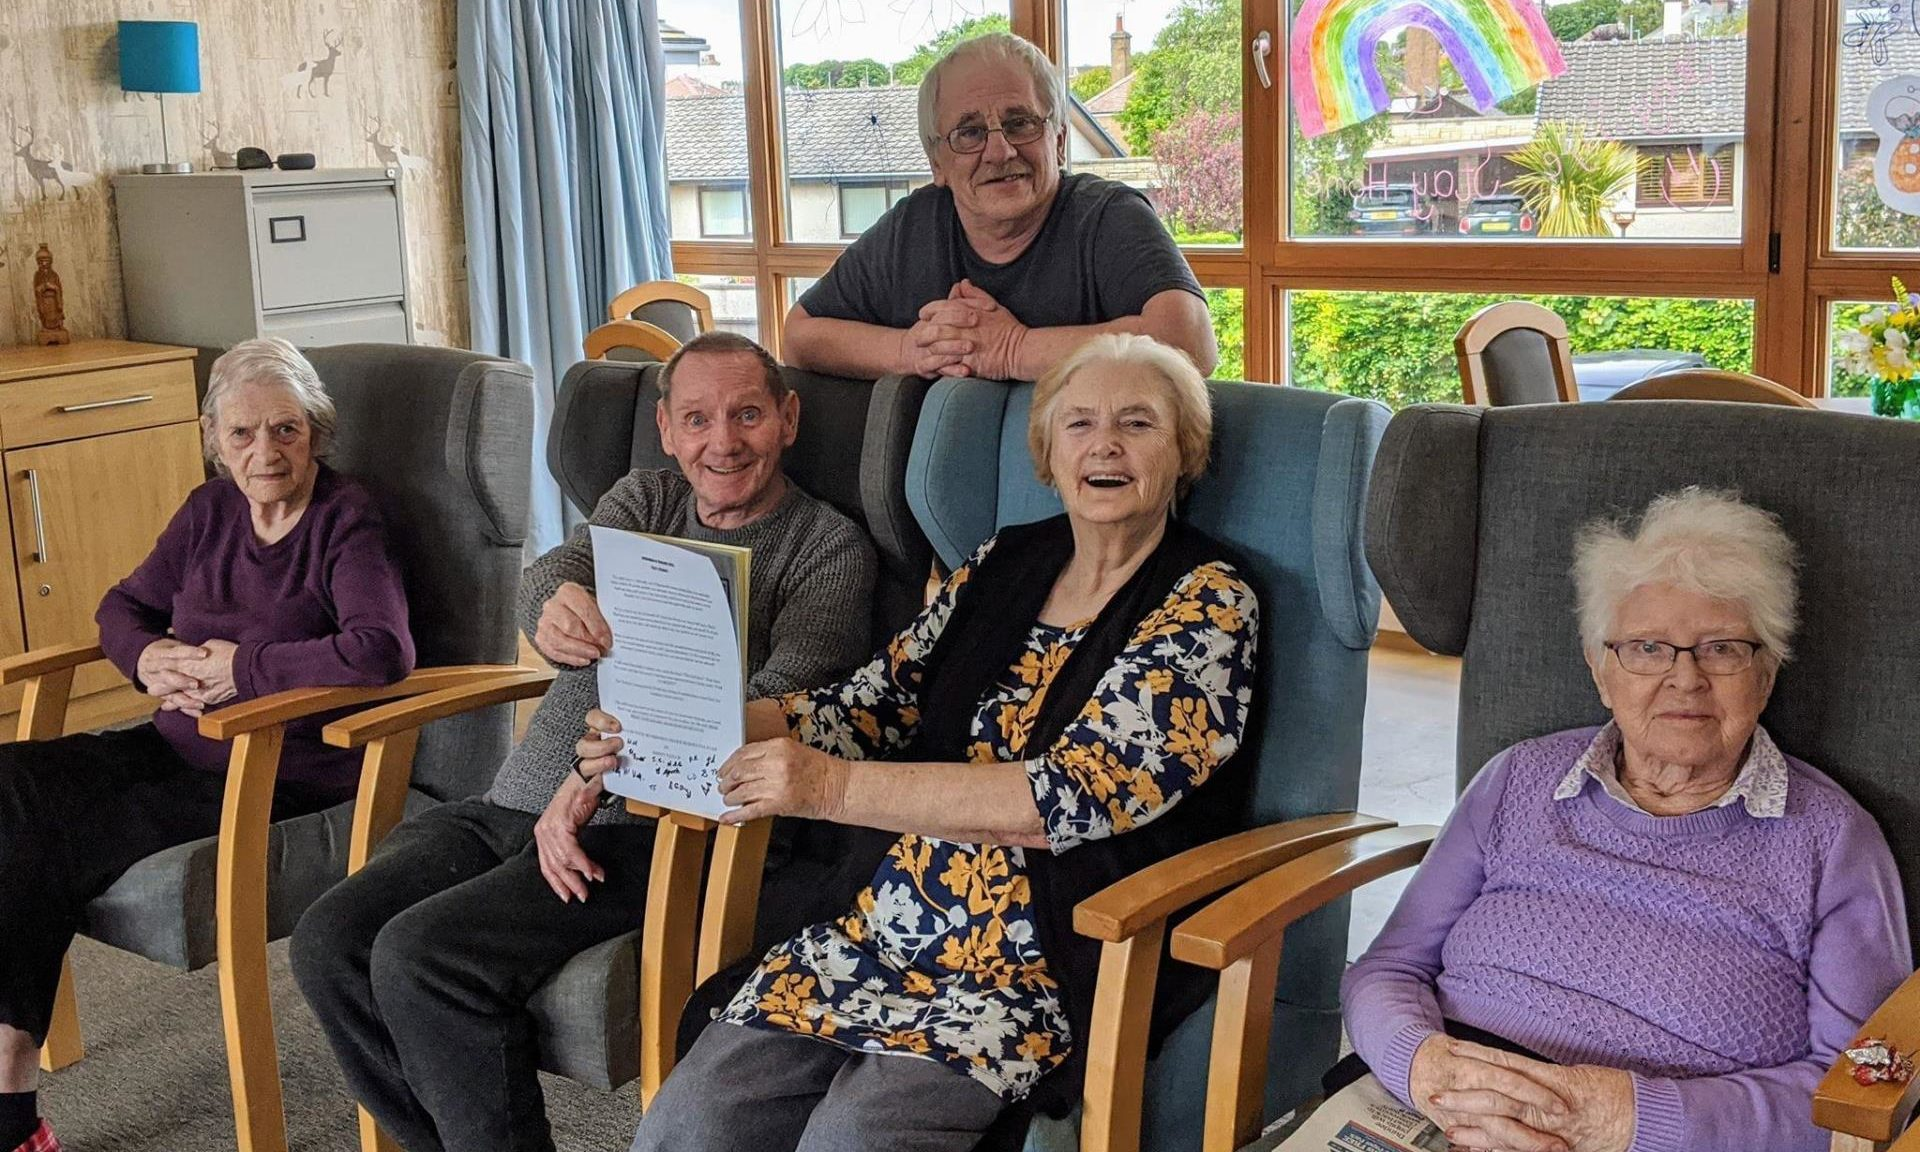 Residents of Fraser Lounge at Balhousie Monkbarns Care Home.